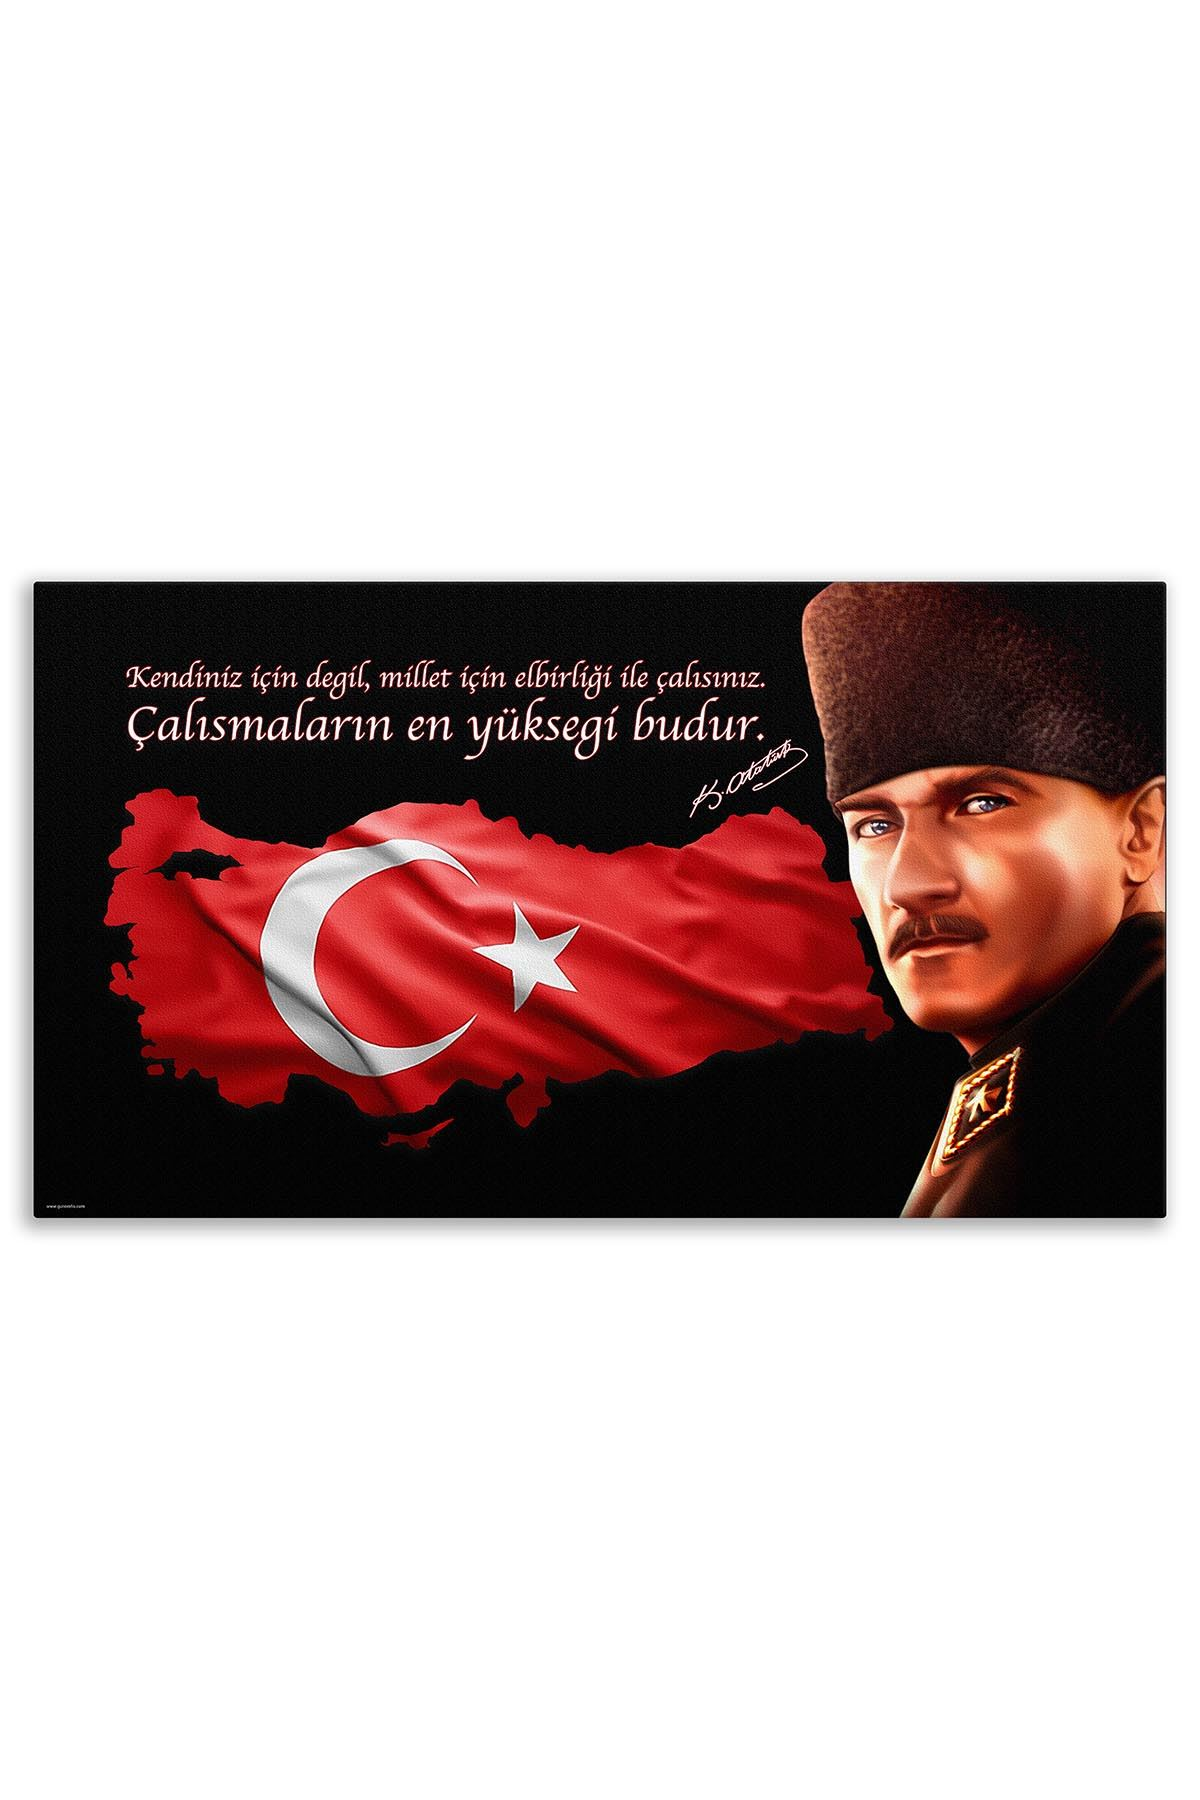 Commander Atatürk Canvas Board | Printed Canvas Board | Customized Canvas Board |Digital Printing